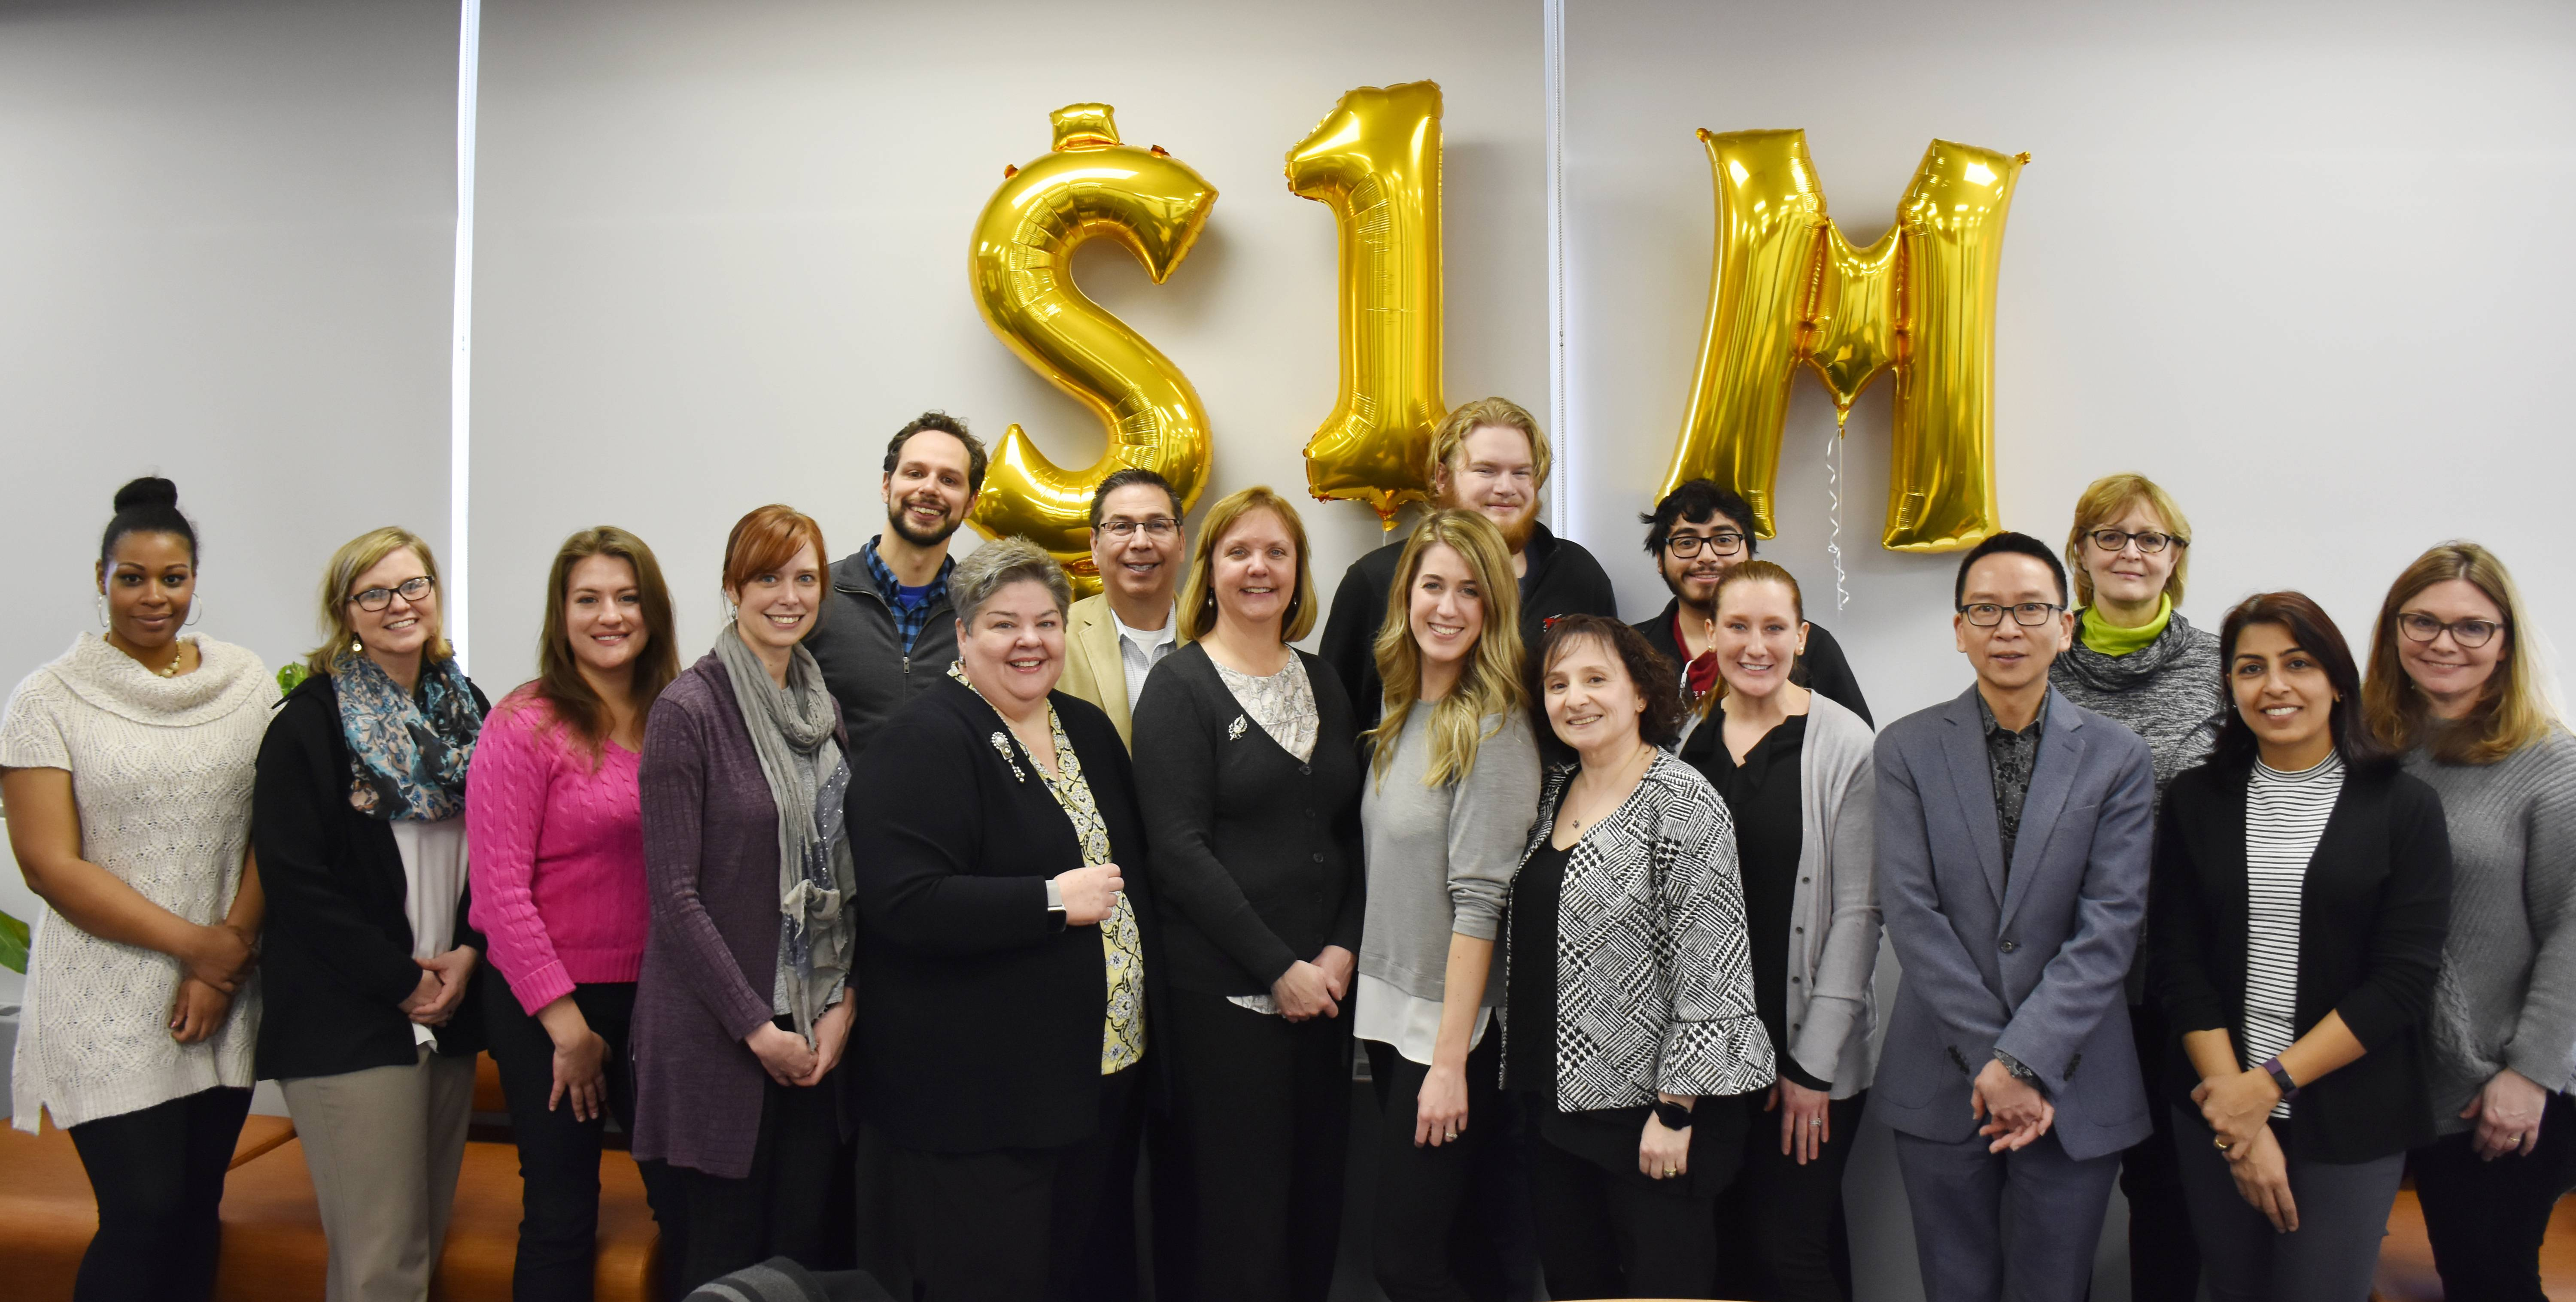 Photo: Triton College faculty, staff and students gathered on Feb. 13 to celebrate the milestone of saving students $1 million through the Low Cost/No Cost Textbook Alternatives initiativeSamantha Schmidt